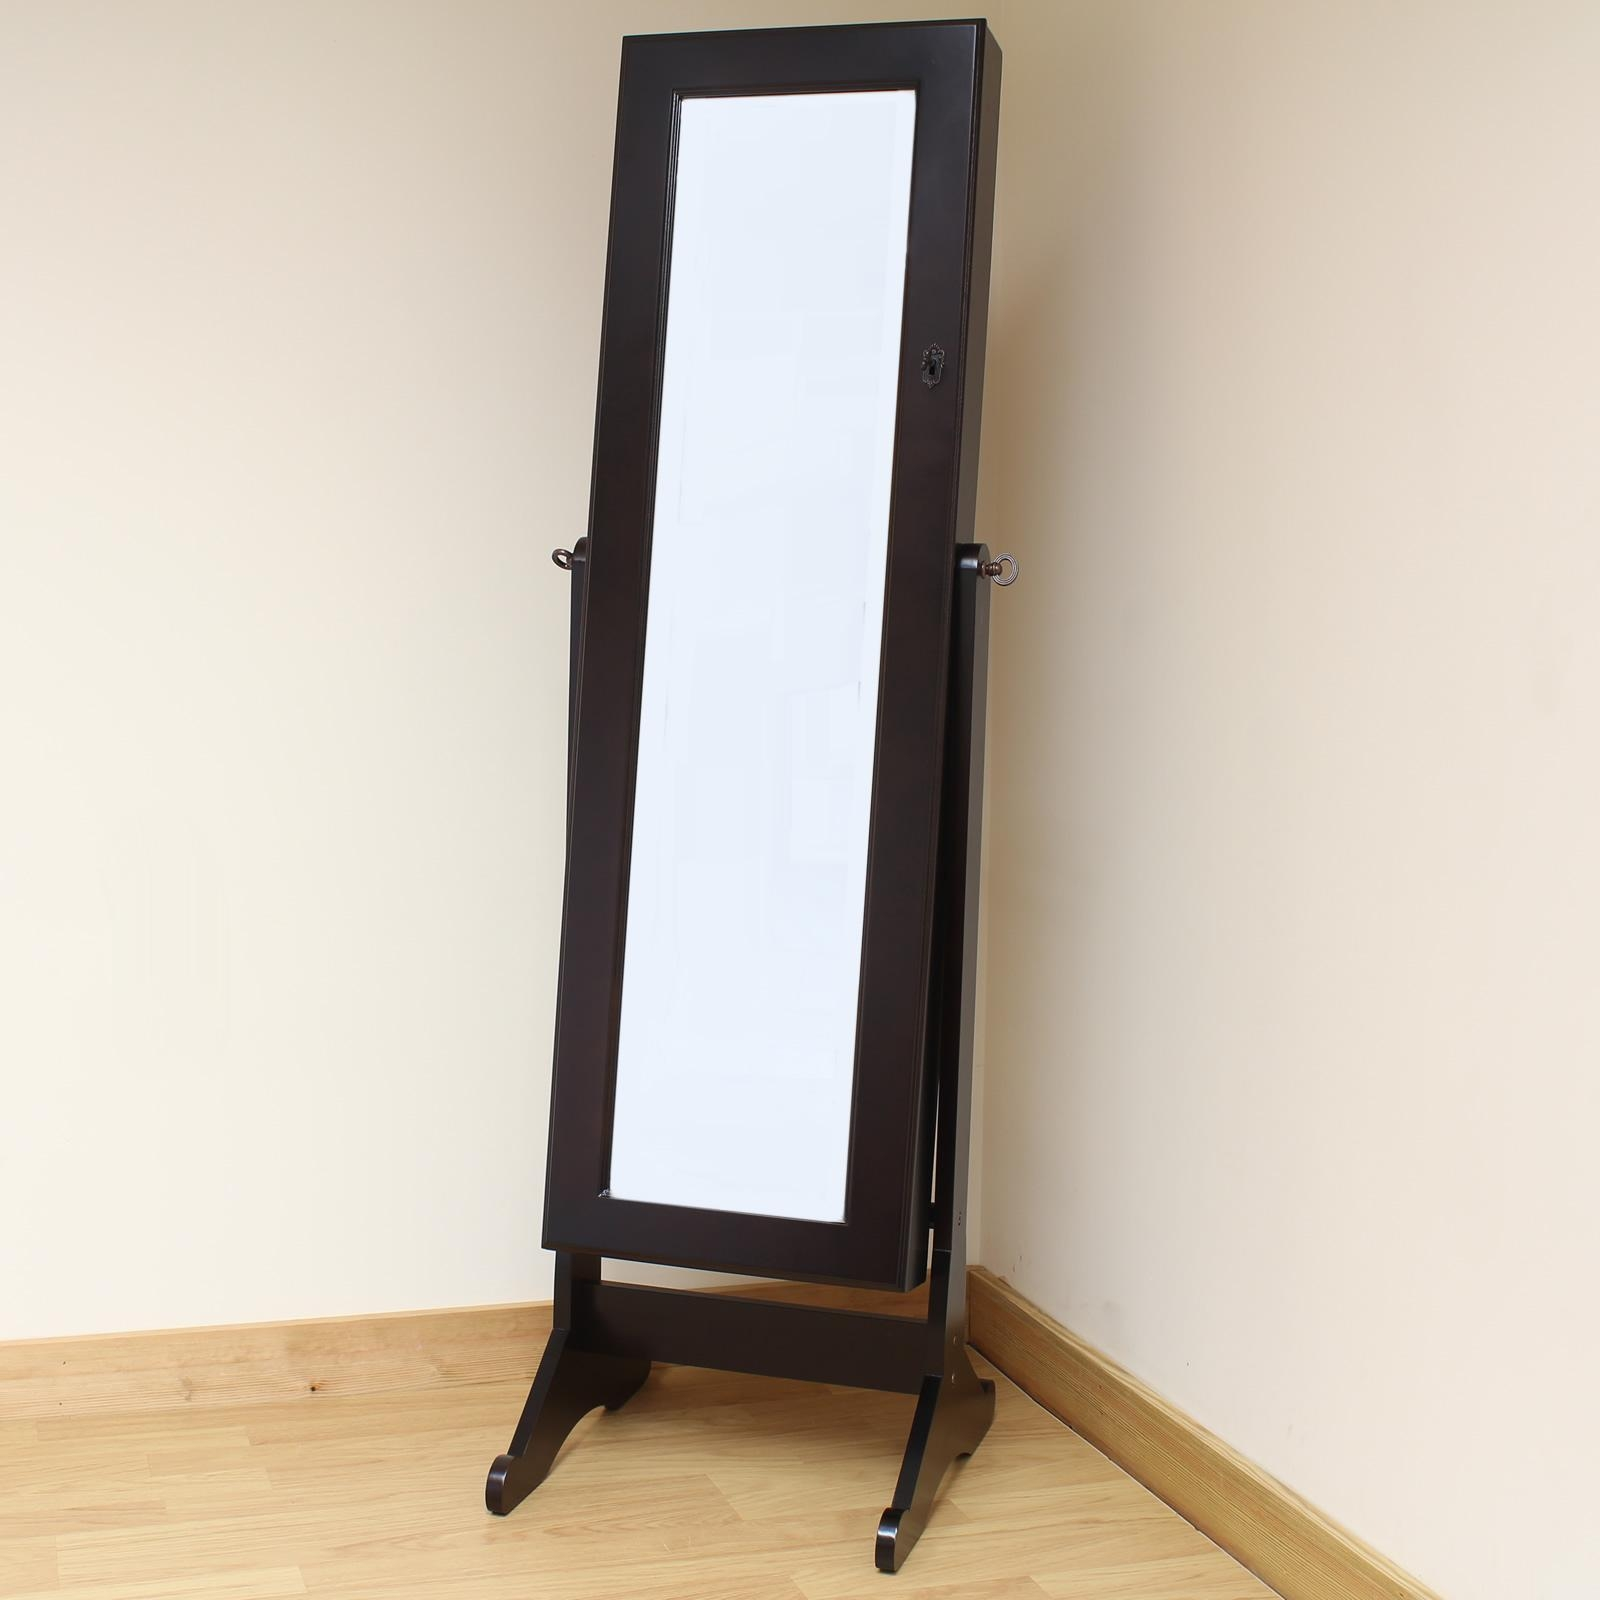 Homeware: Oval Full Length Standing Mirror | Large Floor Mirrors Regarding Cream Floor Standing Mirror (Image 19 of 20)